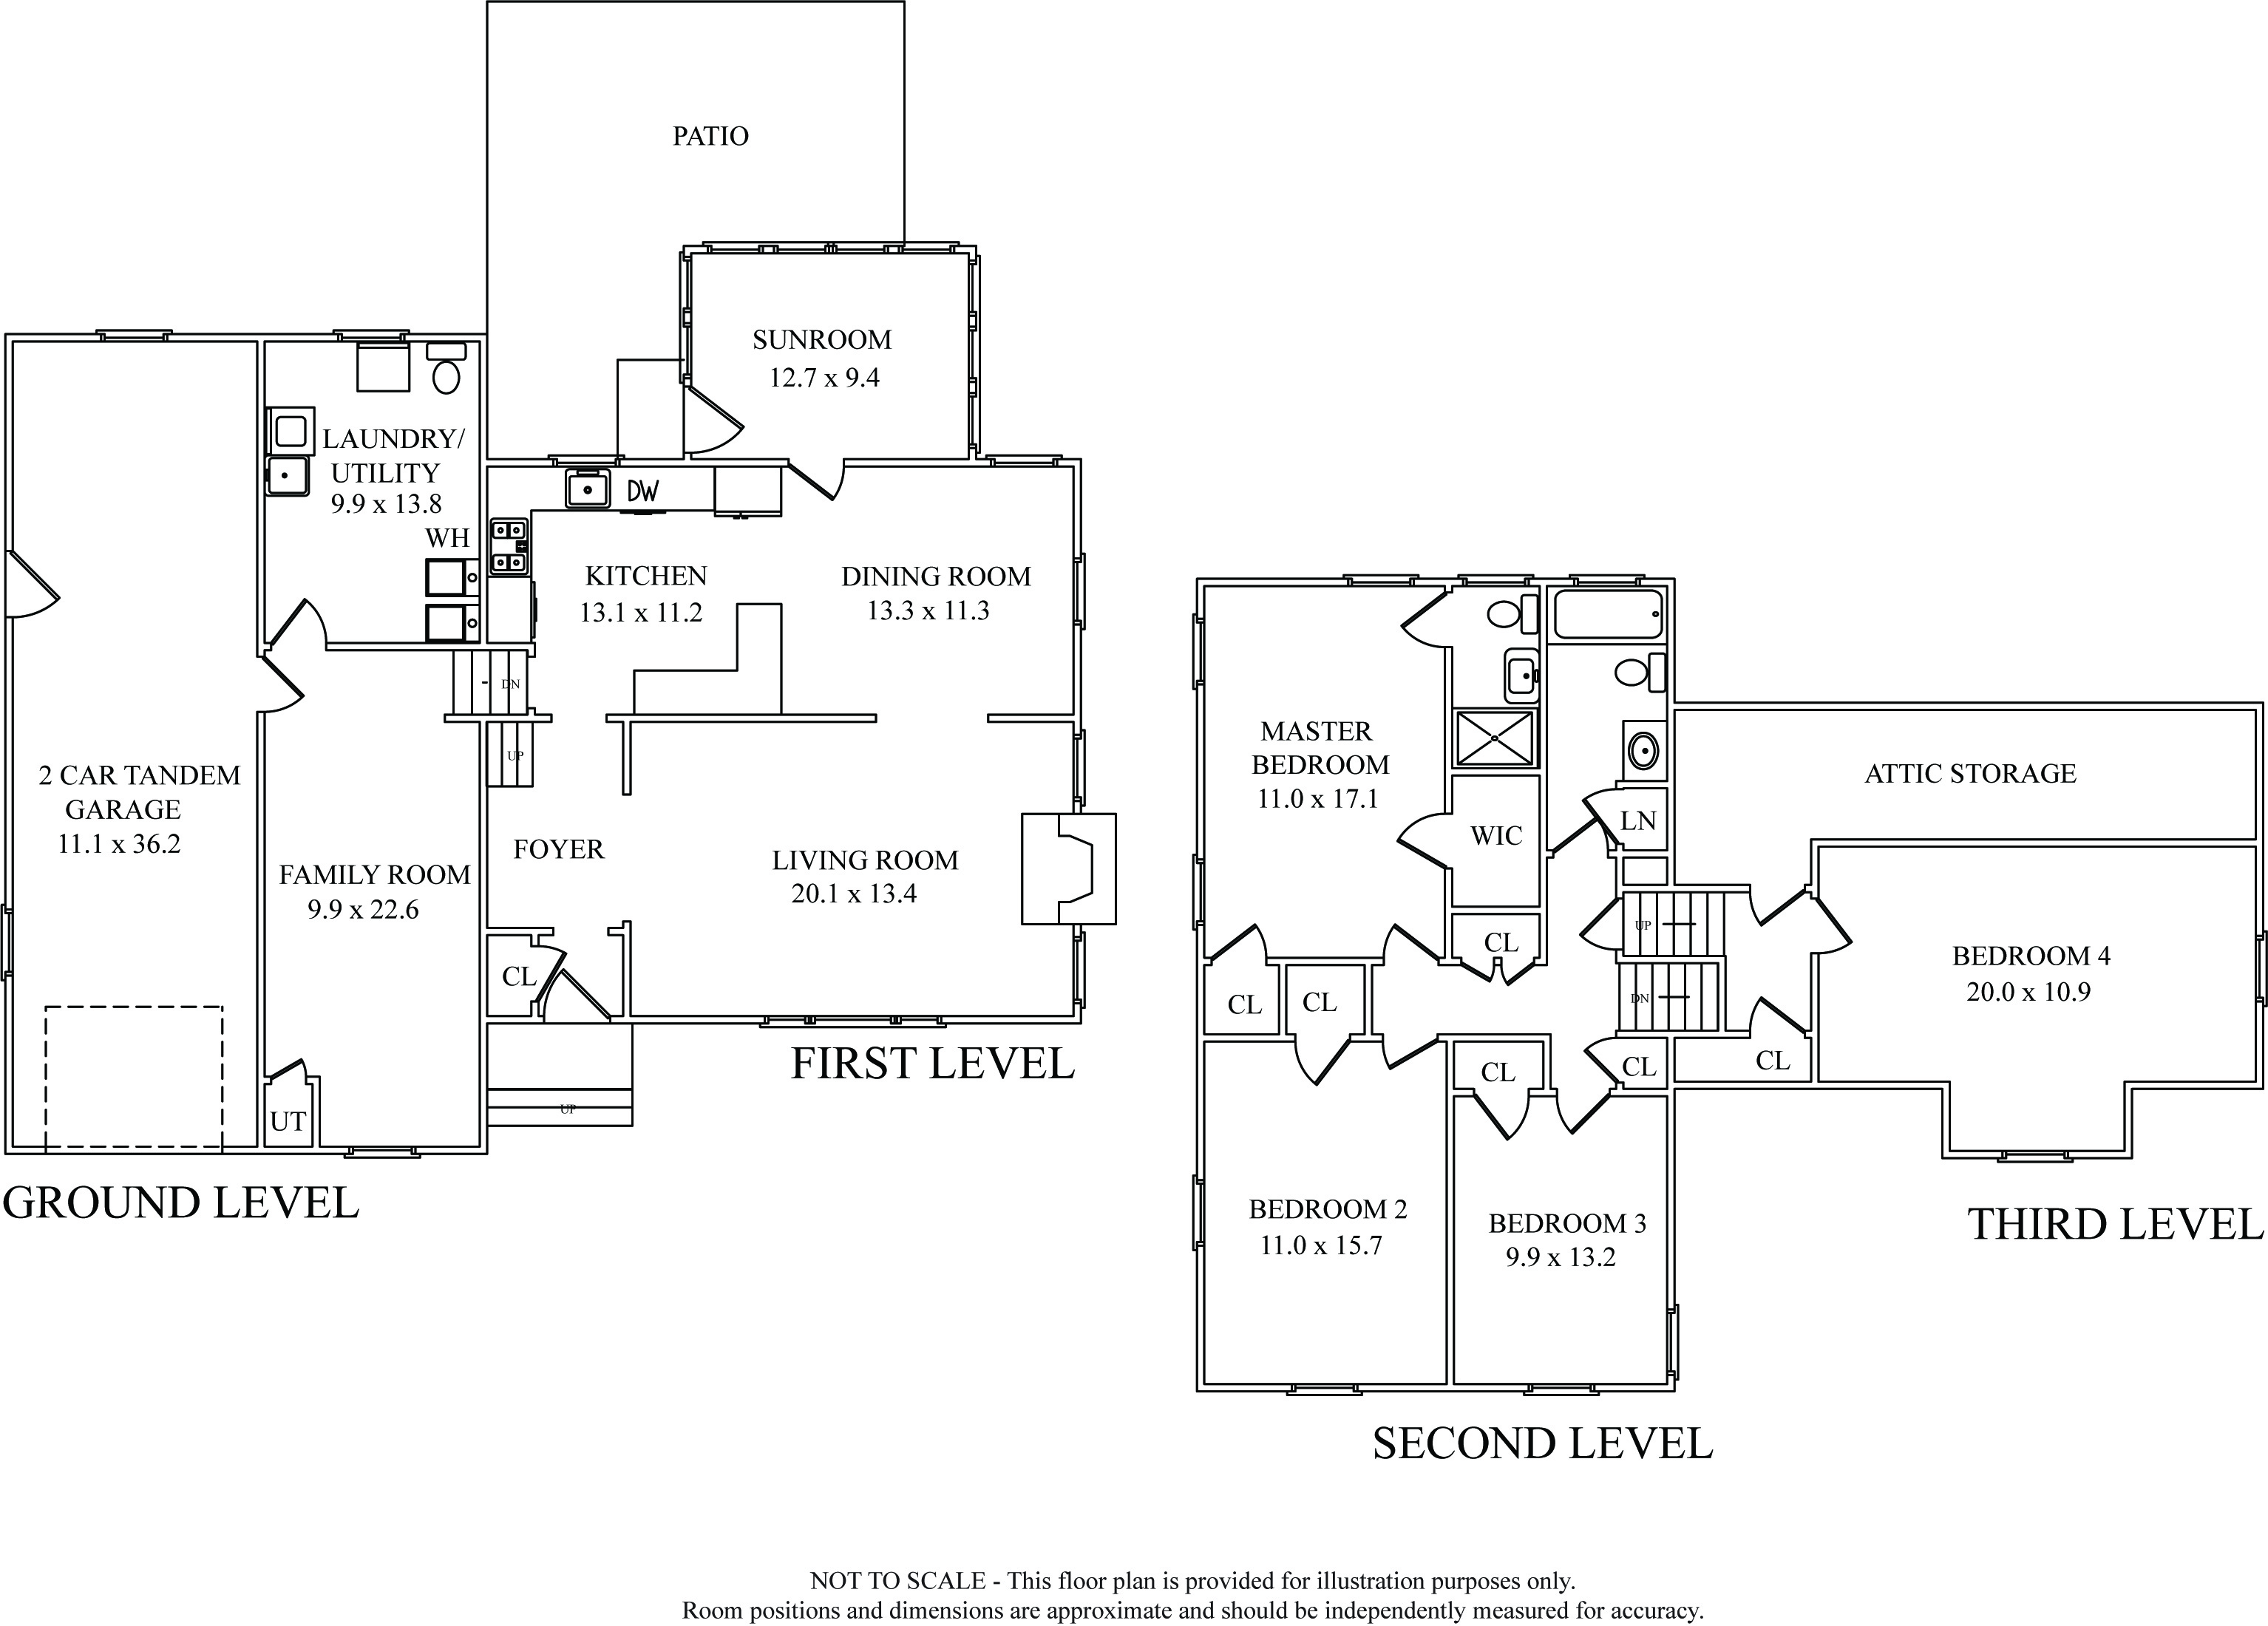 65 W Montrose Ave South Orange Nj 07079 Sue Adler Realtor 10 Kw Williams Wall Furnace Wiring Diagram View Floorplans